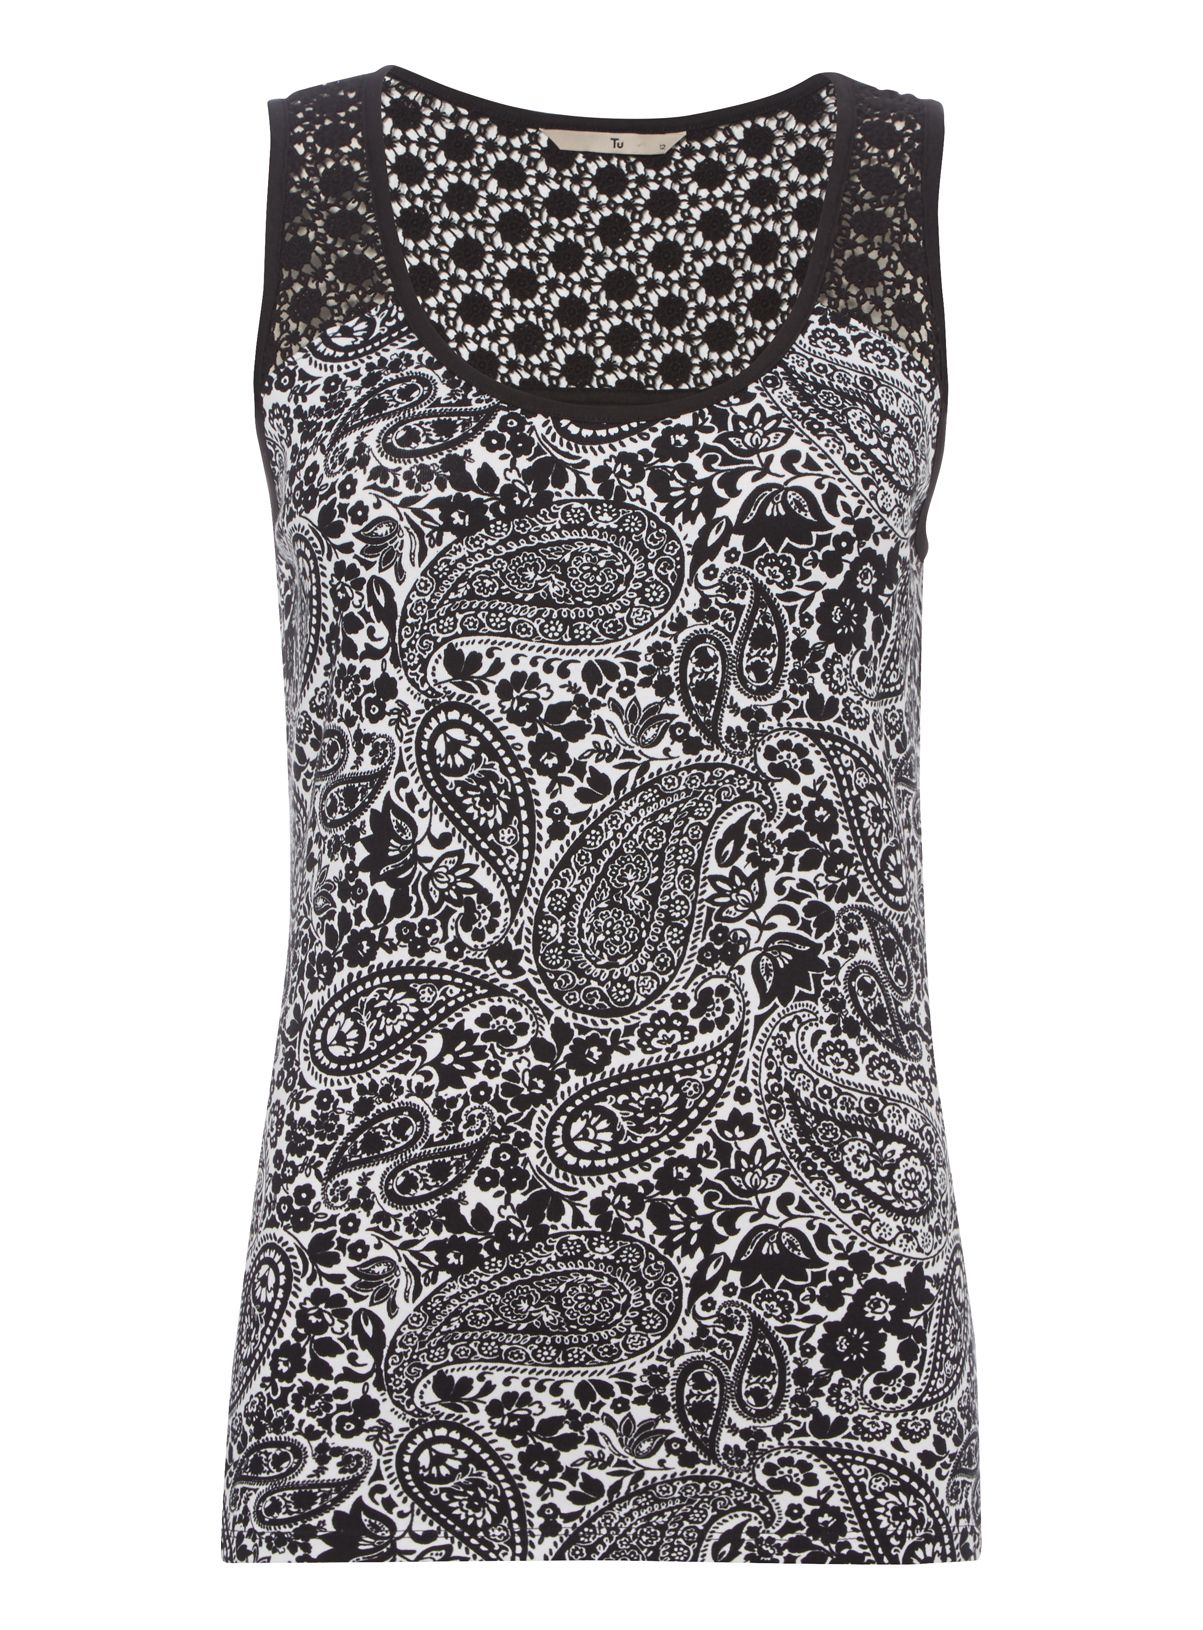 Update your new-season wardrobe with this printed vest. Designed with a scoop neck and lace trim at the back, this piece will look great with denim. Black printed lace trim vest Lace trim at back Sleeveless Scoop neck Stretch material Model's height is 5'11